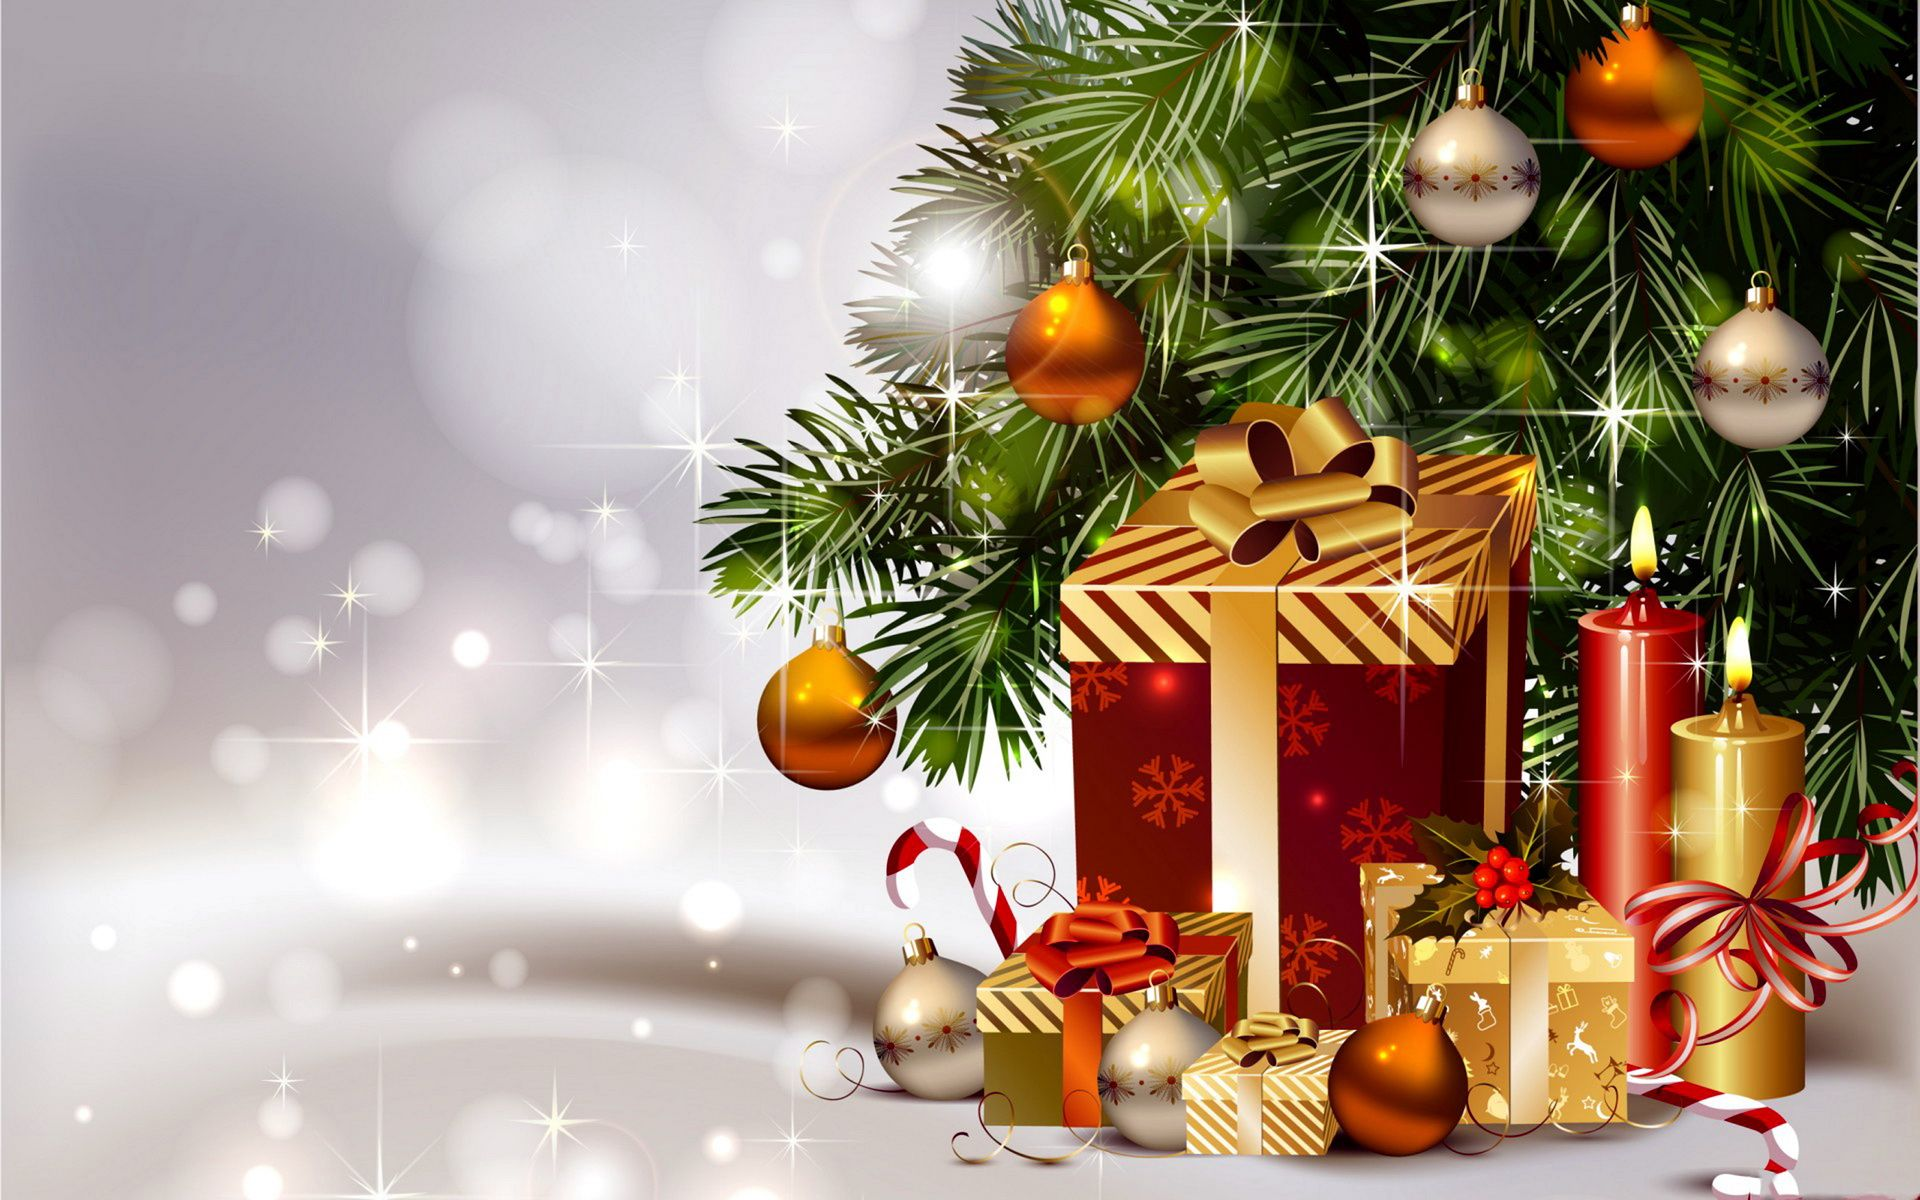 merry christmas hd wallpaper 4 awesome desktop wallpapers